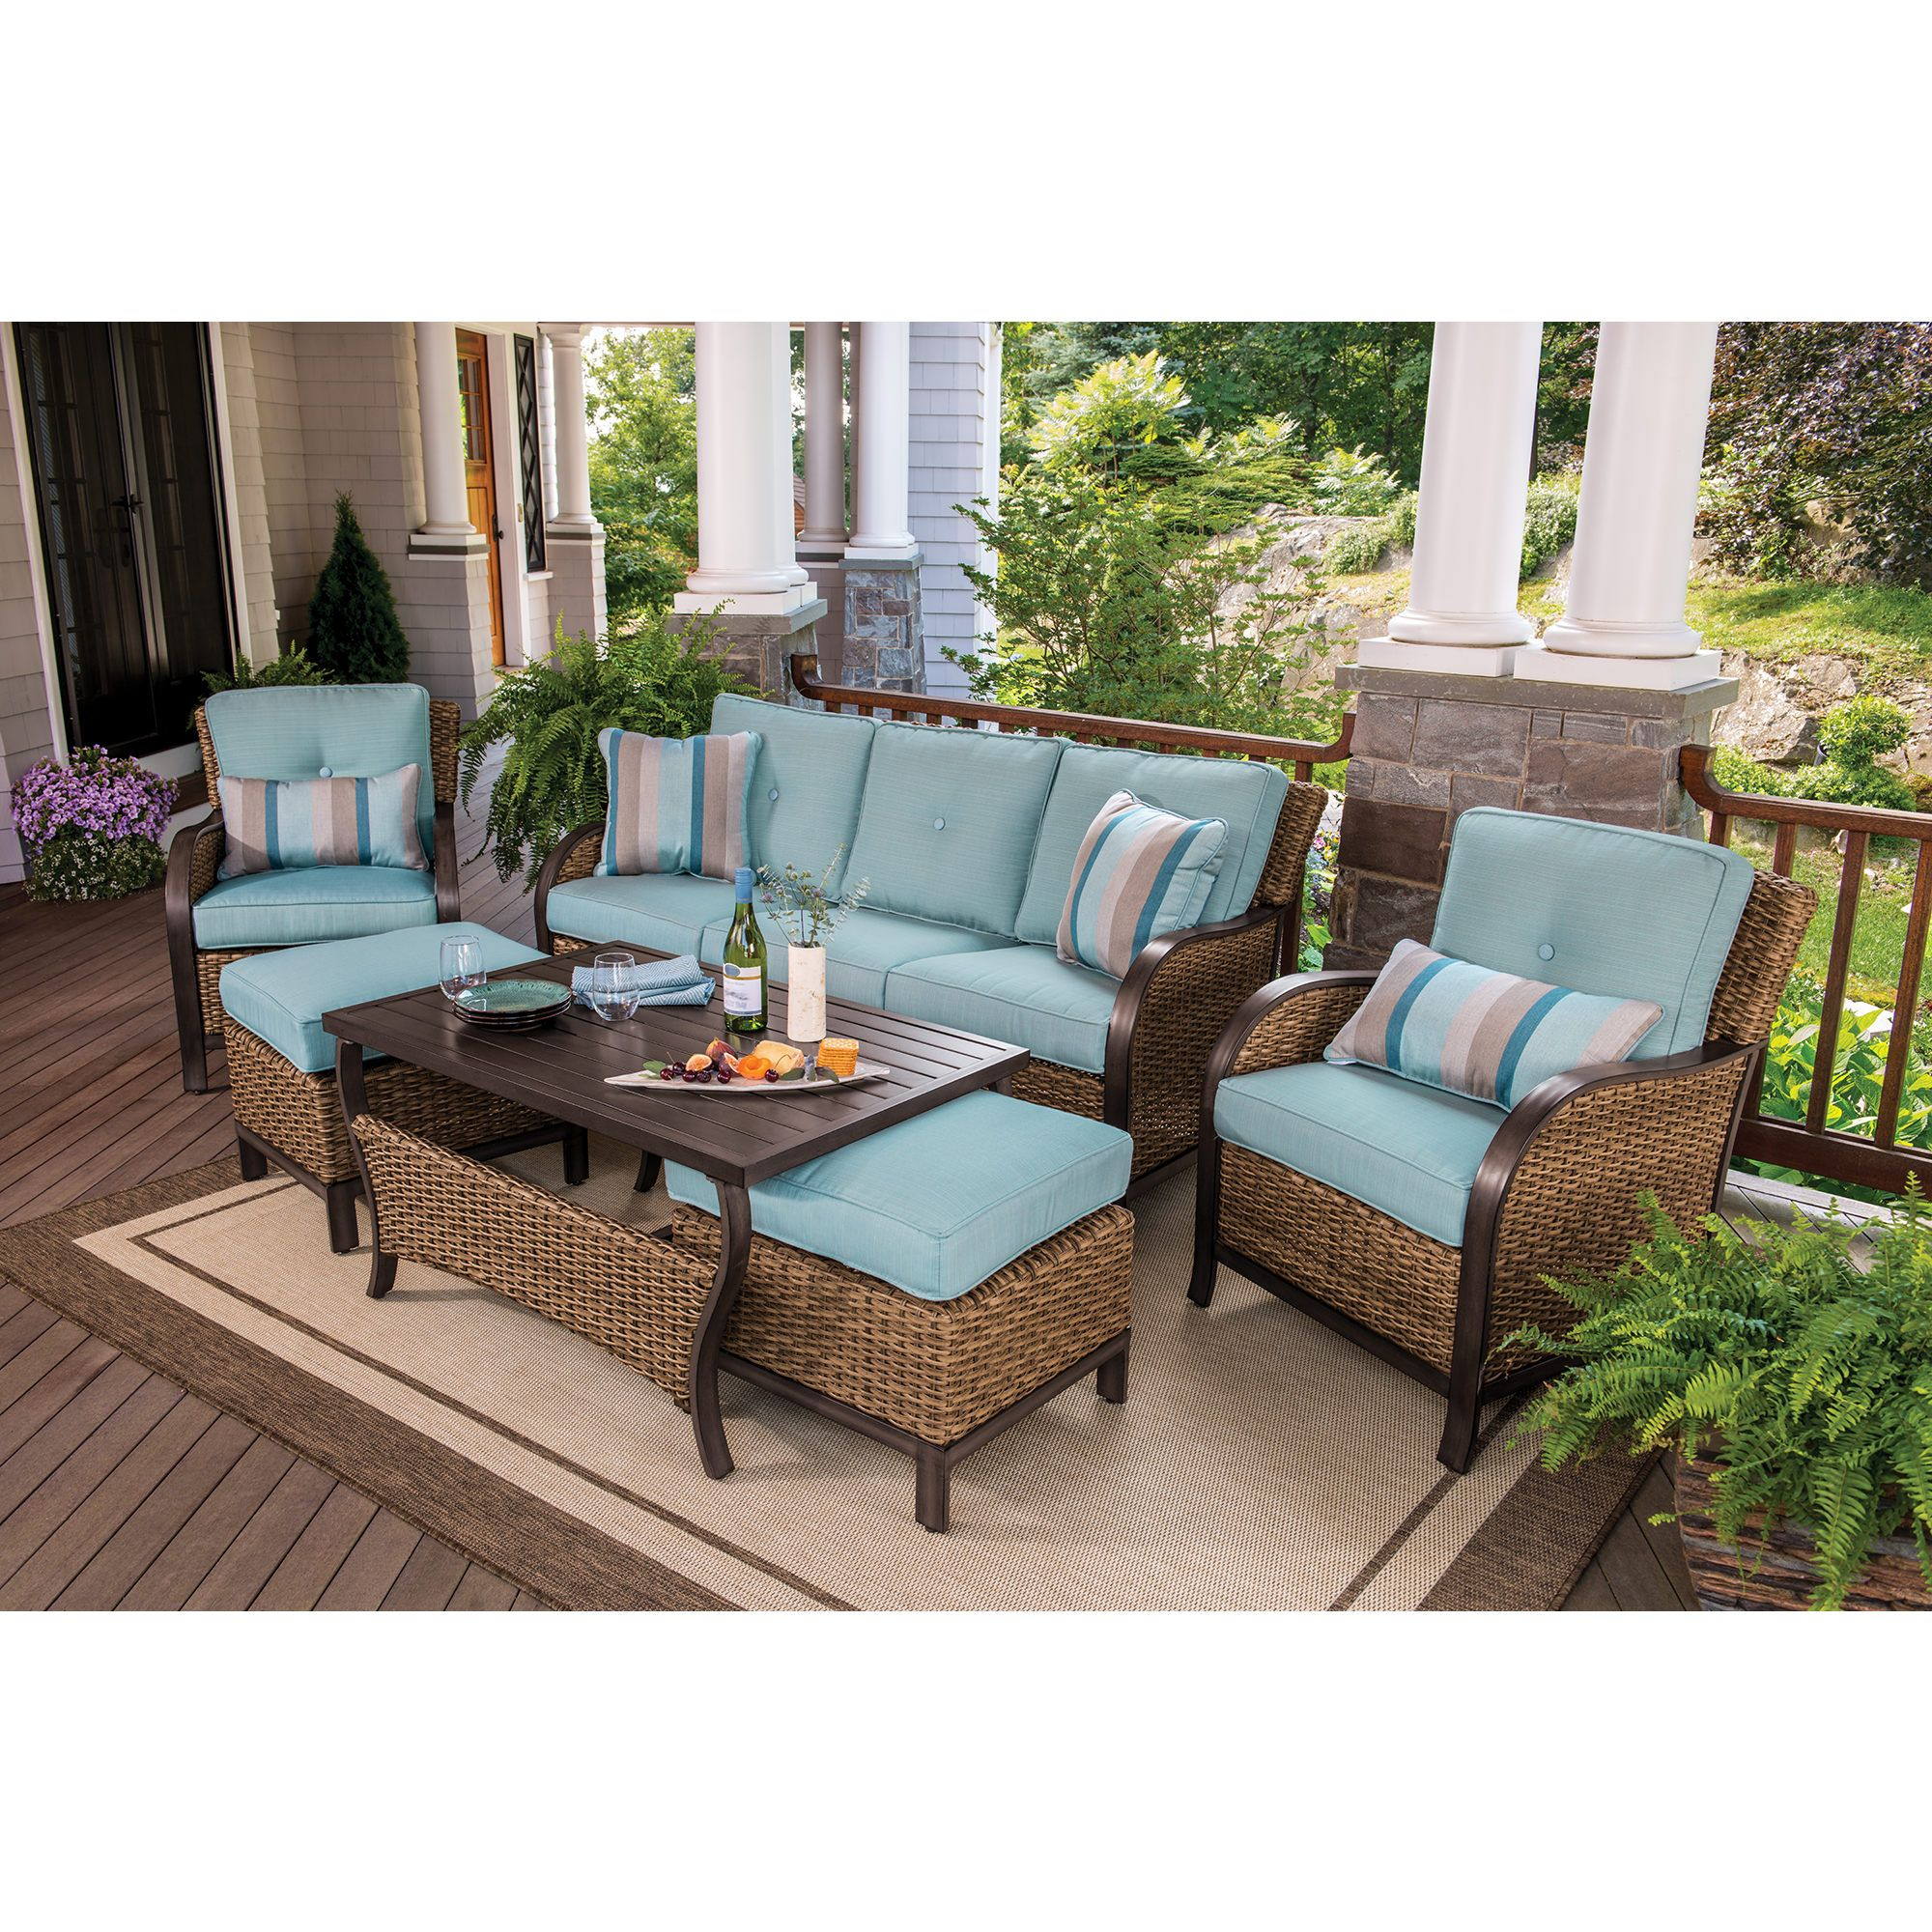 Wicker Patio Chair Berkley Jensen Nantucket 6 Piece Wicker Patio Set Bjs Wholesale